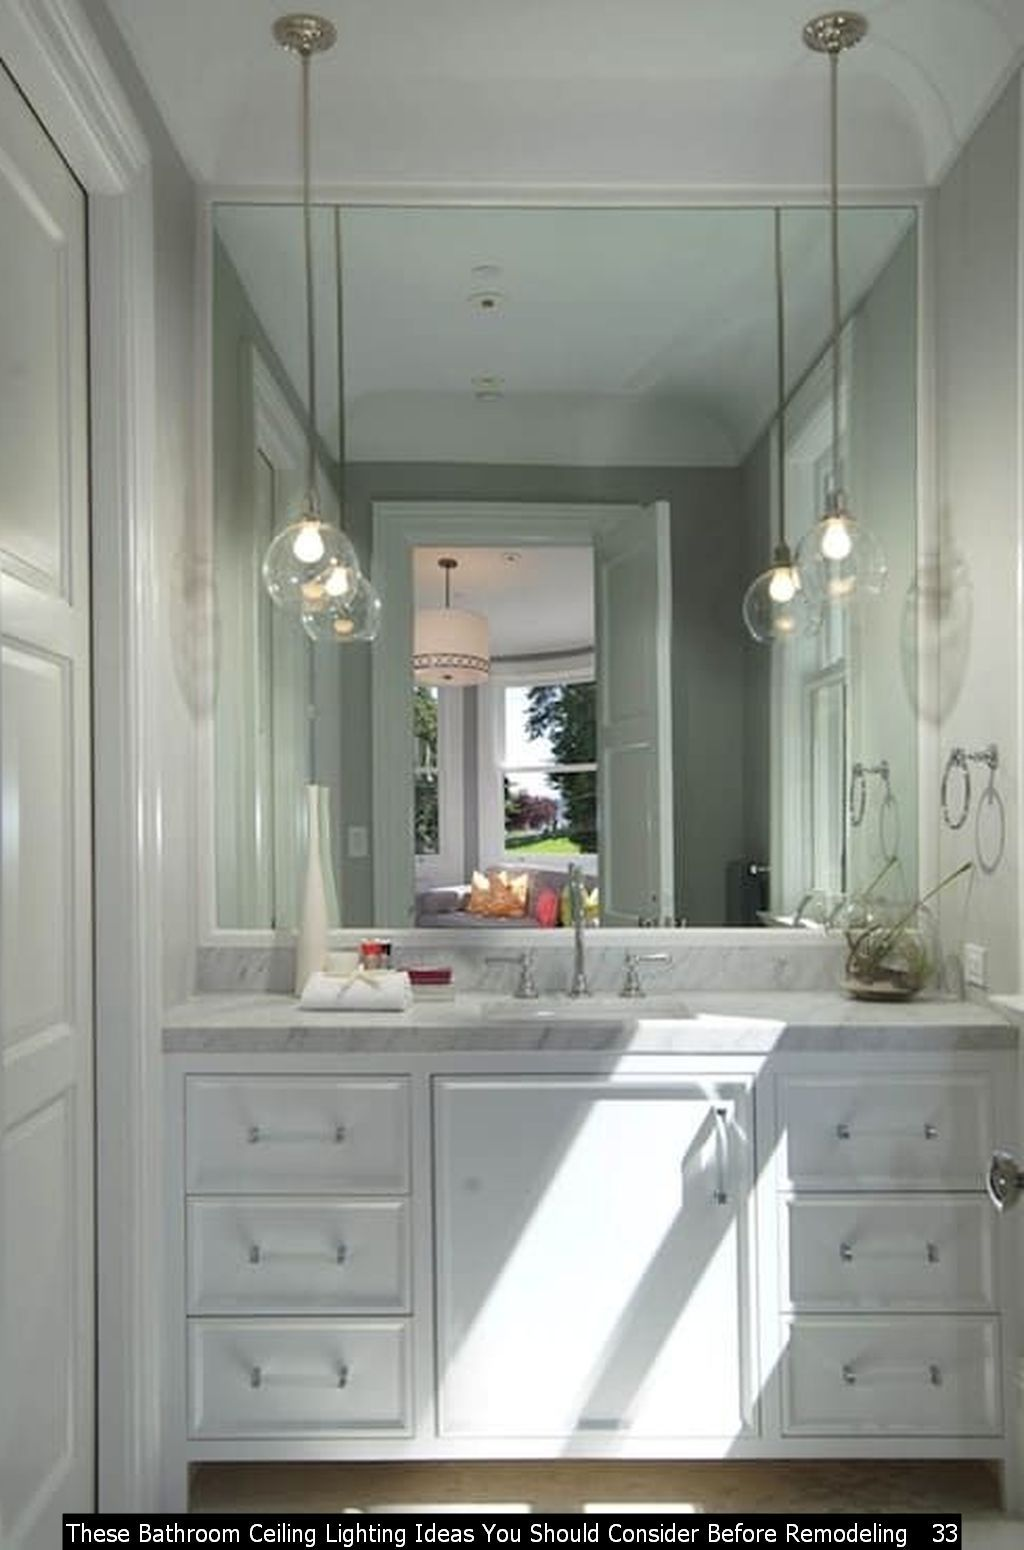 38 These Bathroom Ceiling Lighting Ideas You Should ...